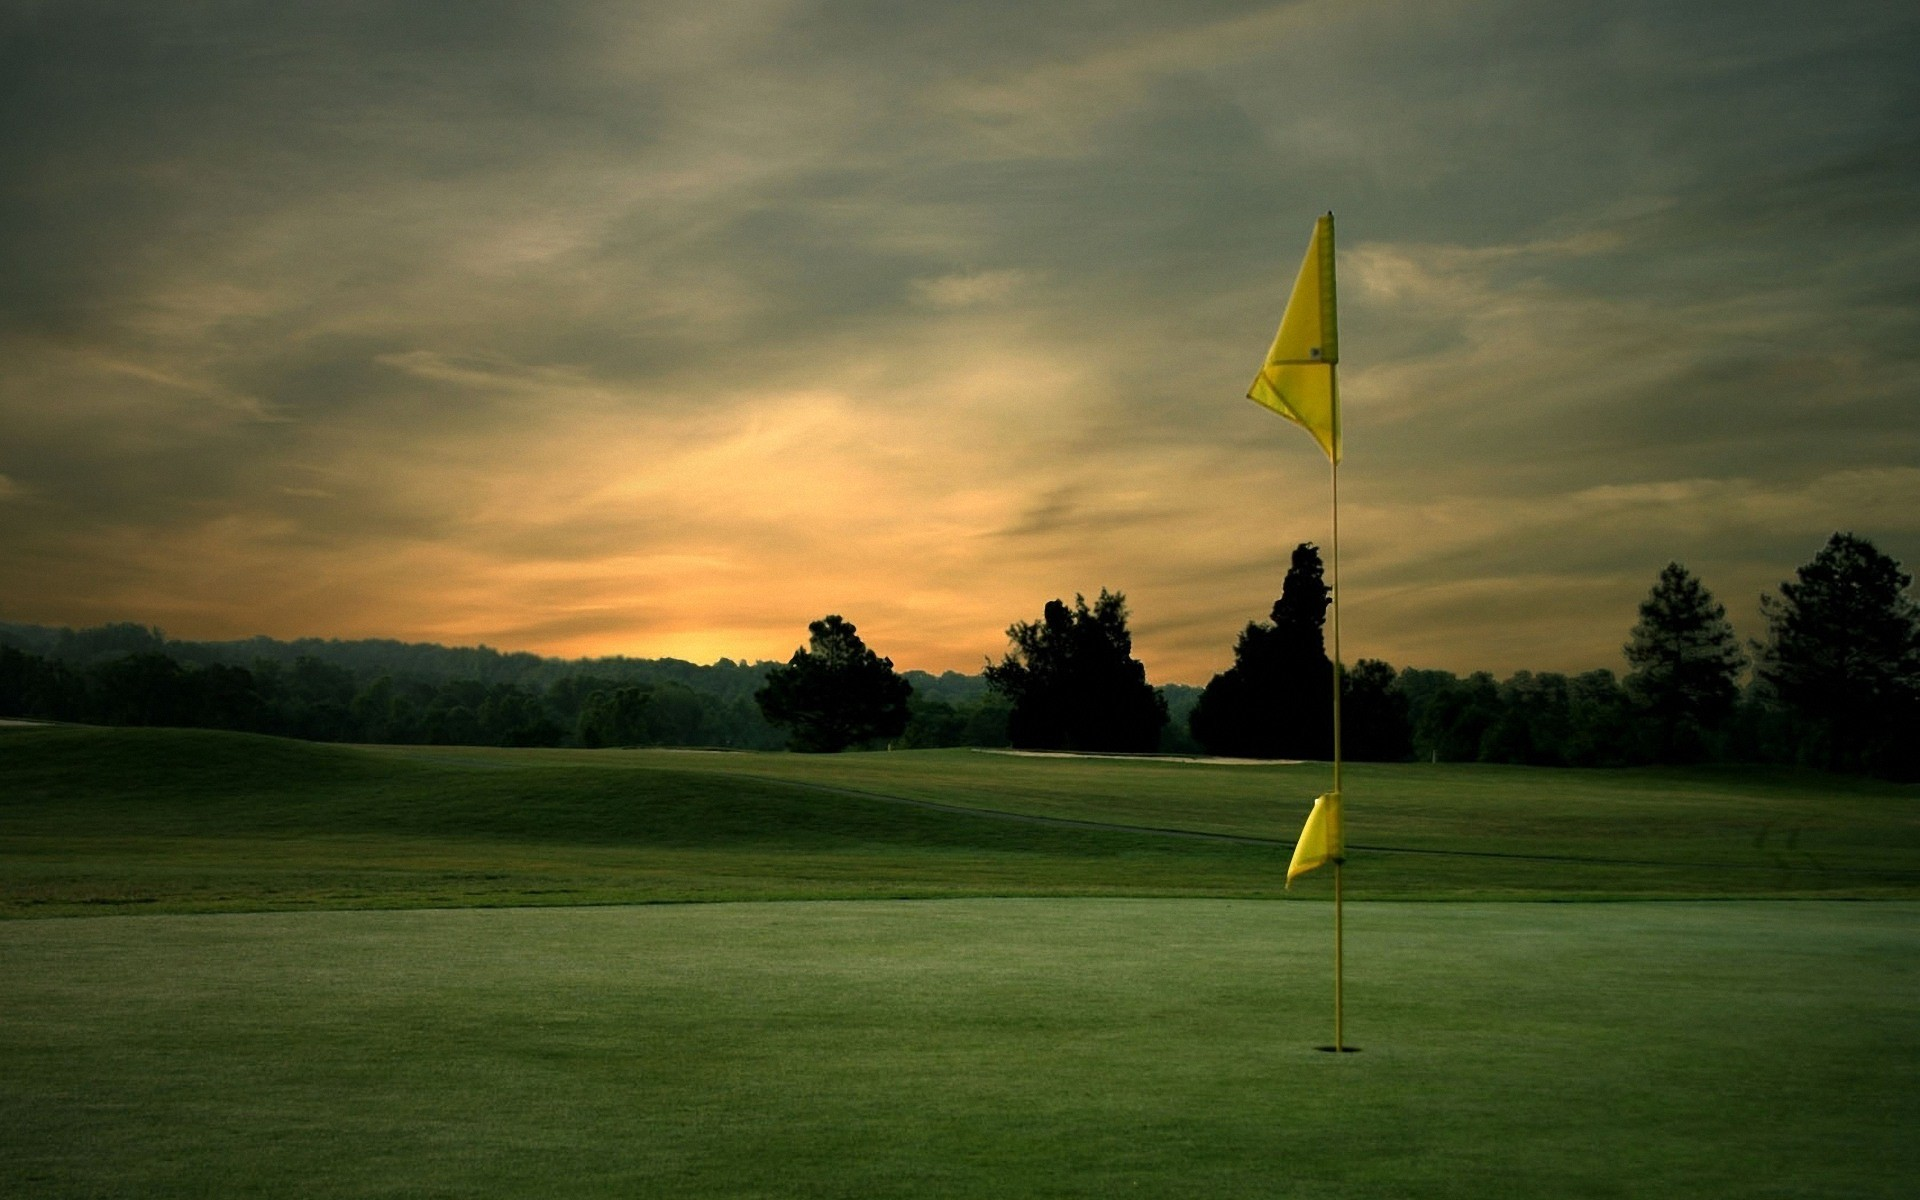 Res: 1920x1200, HD Golf Wallpaper free download.